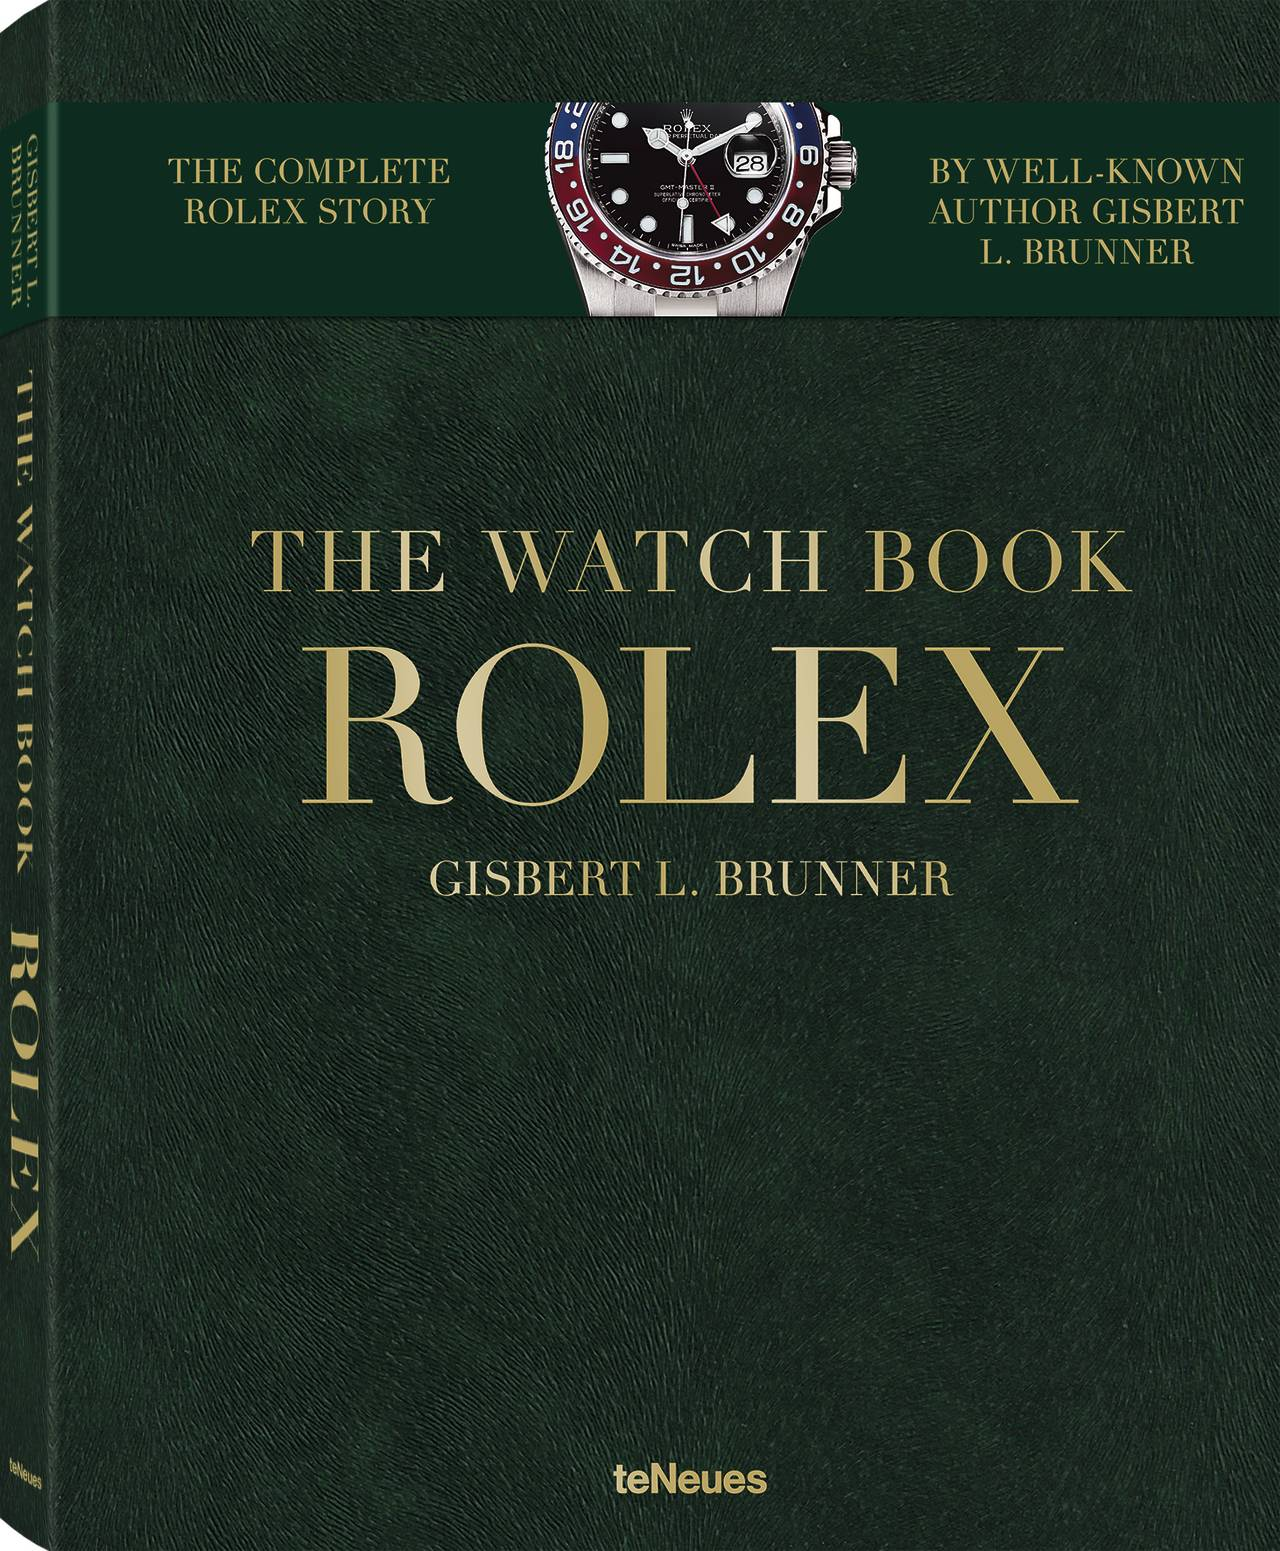 © THE WATCH BOOK ROLEX by Gisbert L. Brunner, to be published by teNeues in June 2017, www.teneues.com. Photo © Courtesy of Rolex